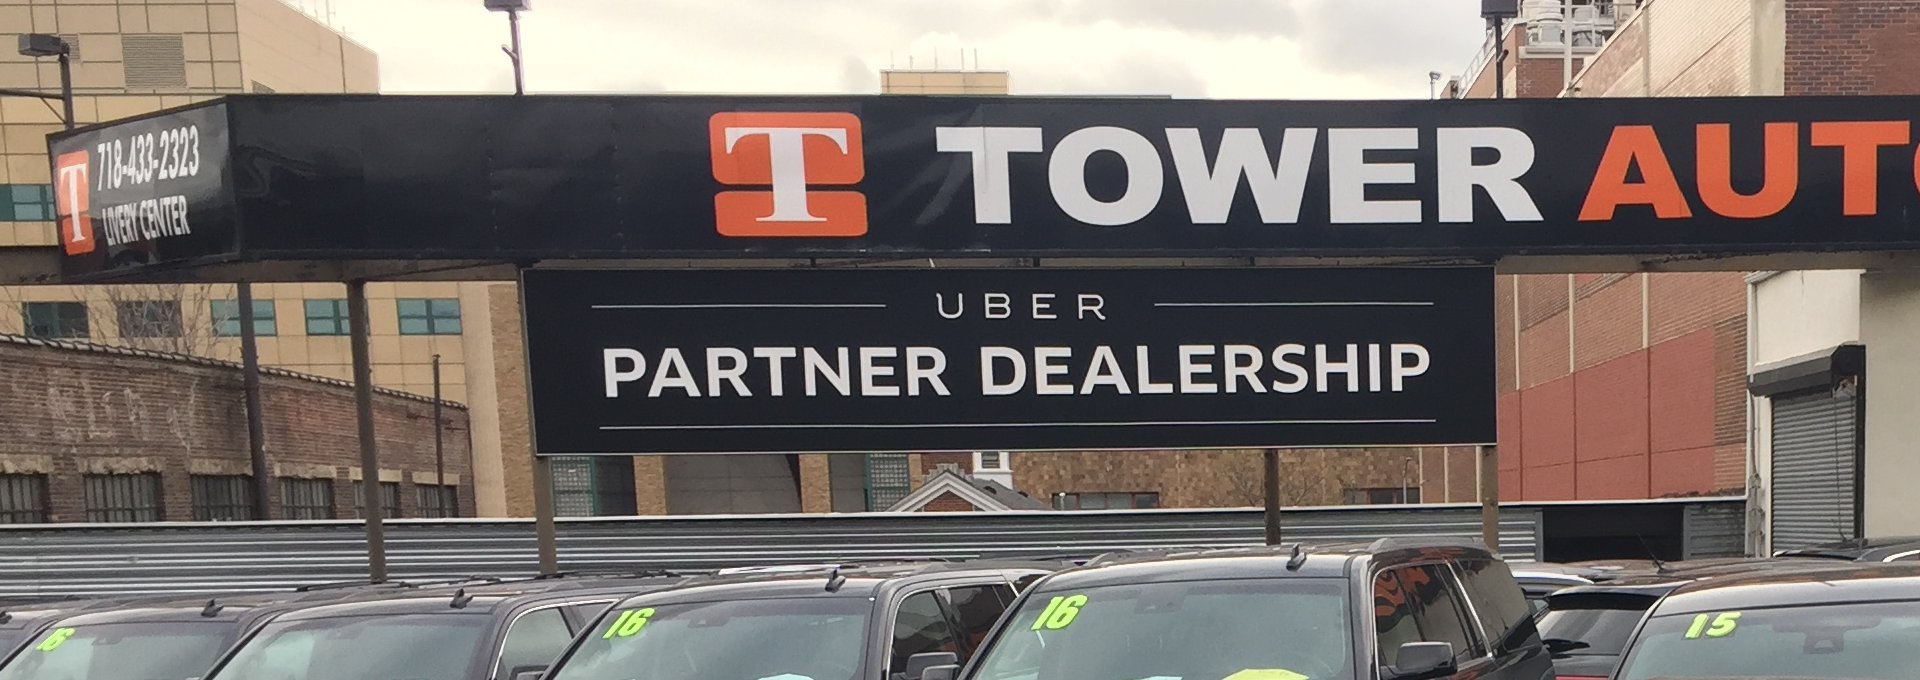 Ford Dealership Nyc >> Tower Auto Mall Inc. Long Island City NY | New & Used Cars Trucks Sales & Service